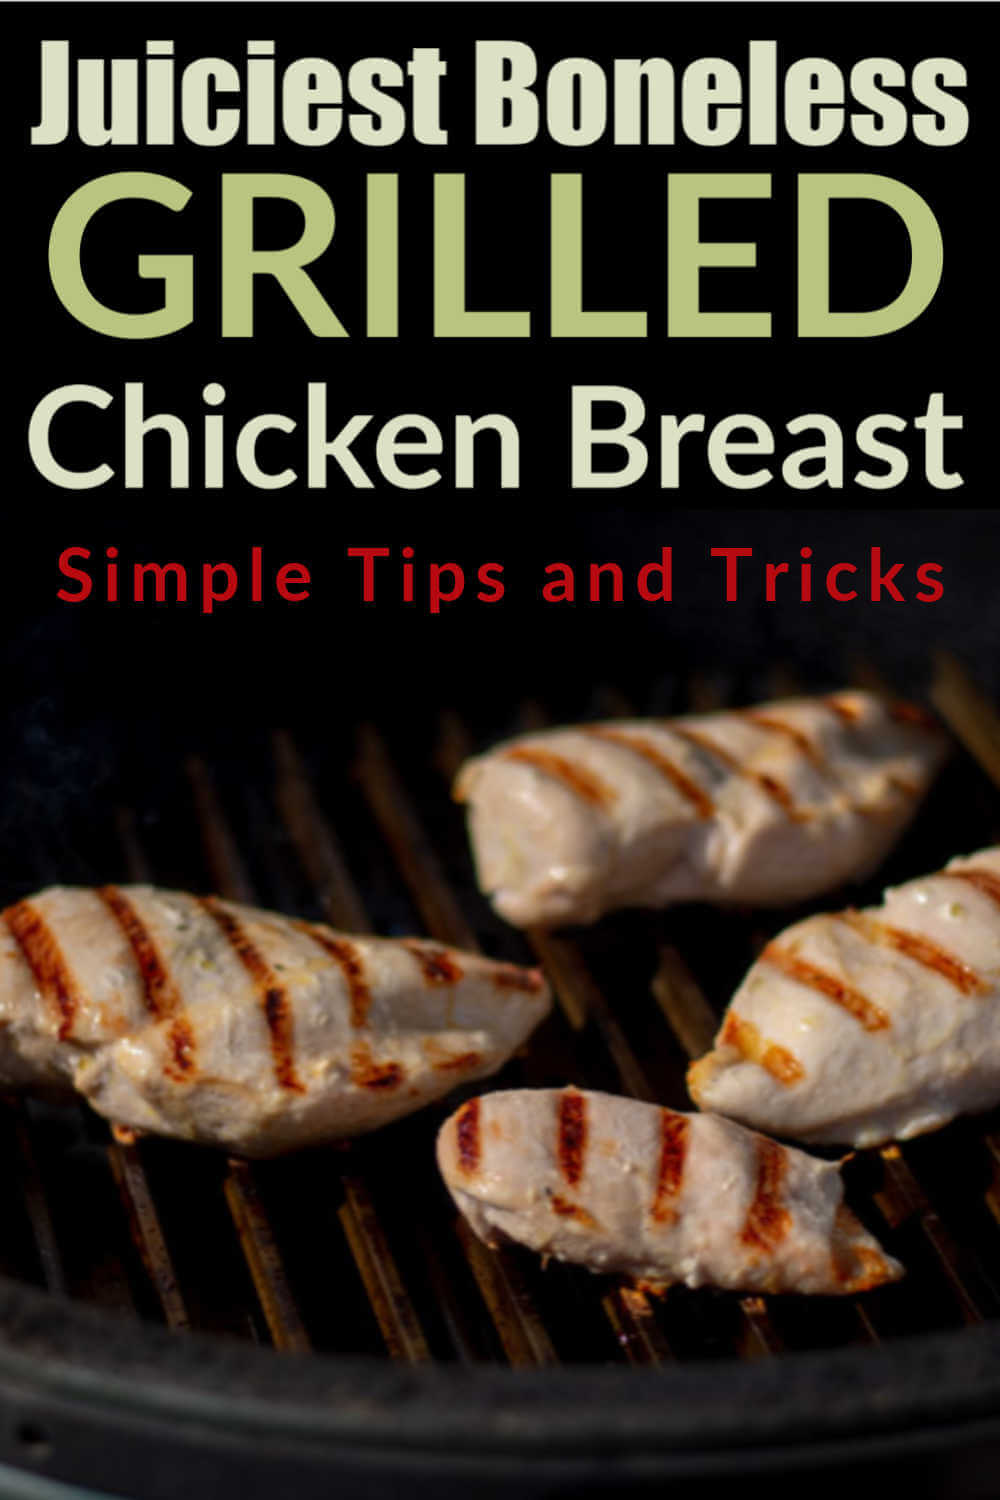 Juiciest Boneless Skinless Grilled Chicken Breast Recipe